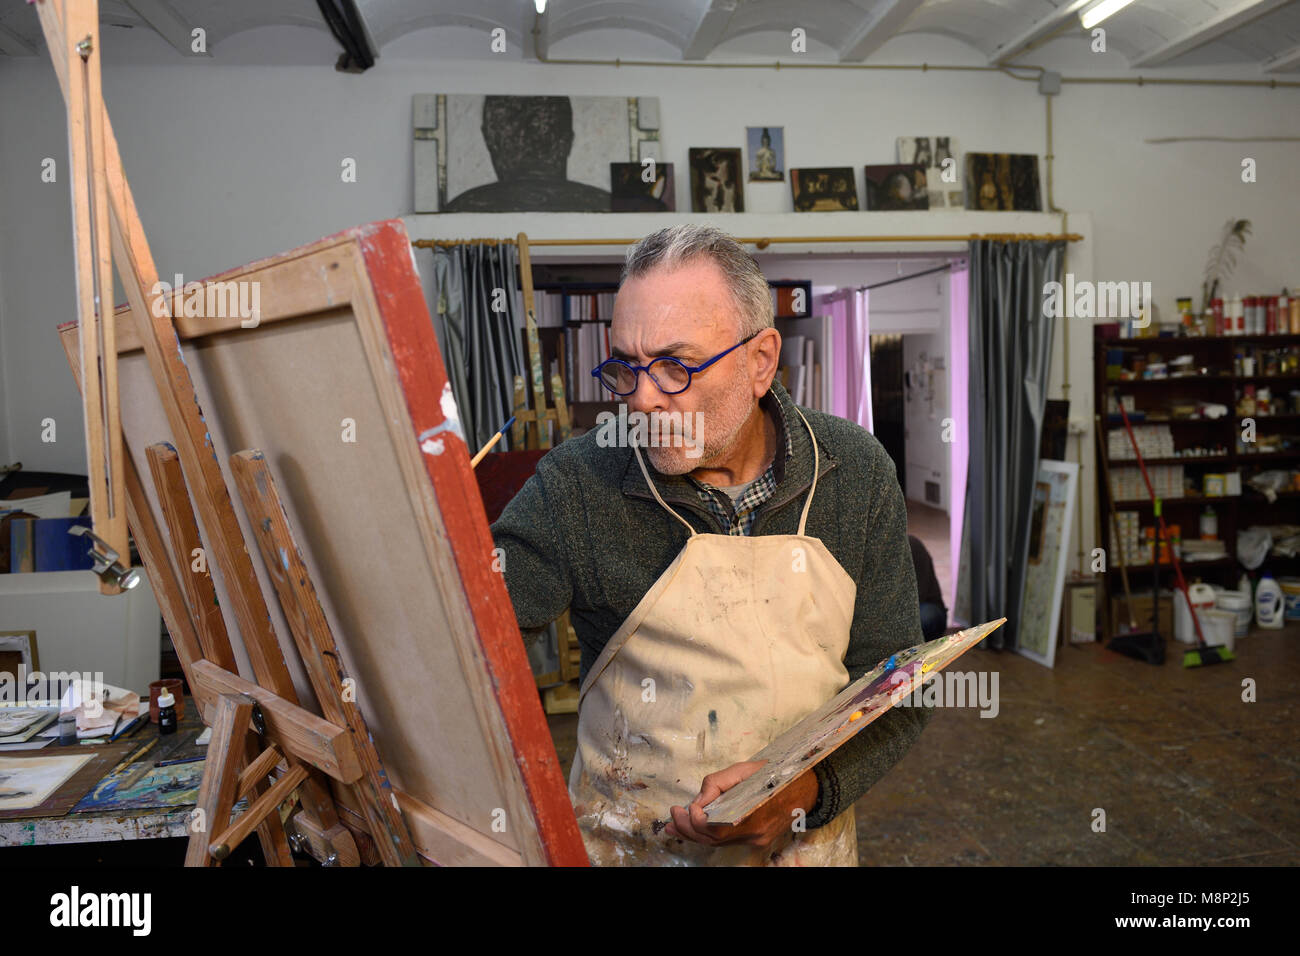 Painter artist painting a picture in the studio - Stock Image